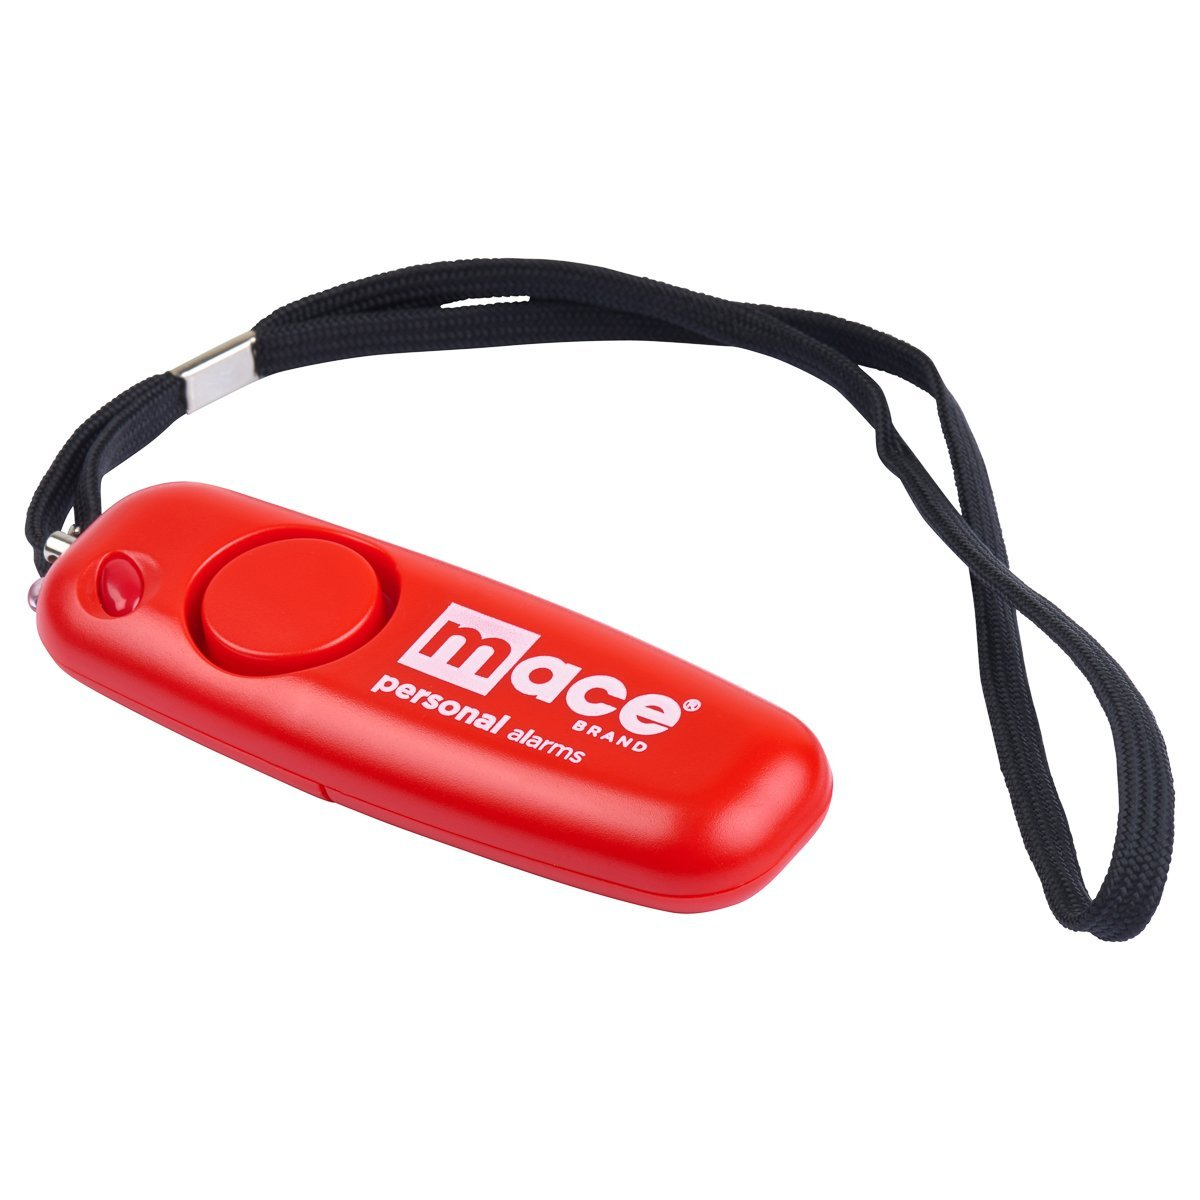 Mace Brand 130 dB Personal Rape/Jogger/Student Emergency Alarm with LED Light and Included AAA Batteries